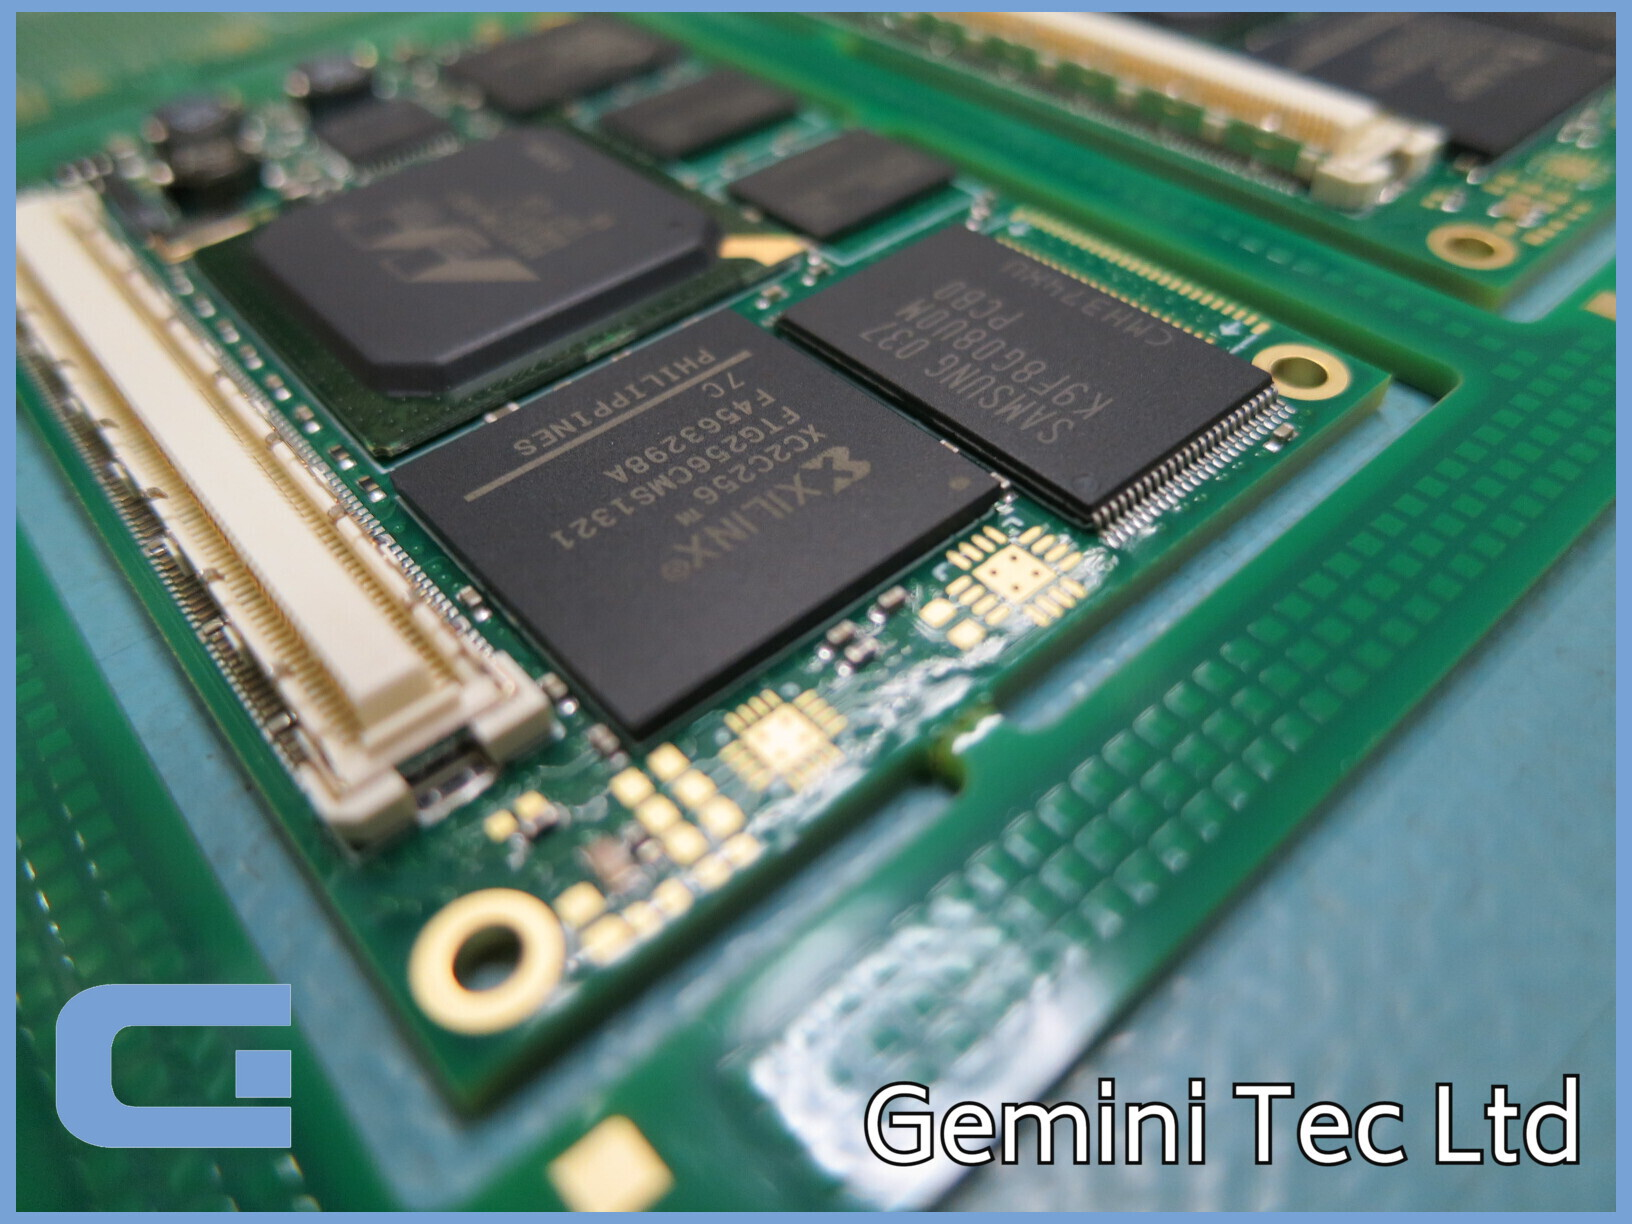 Complex PCBA at Gemini Tec Ltd